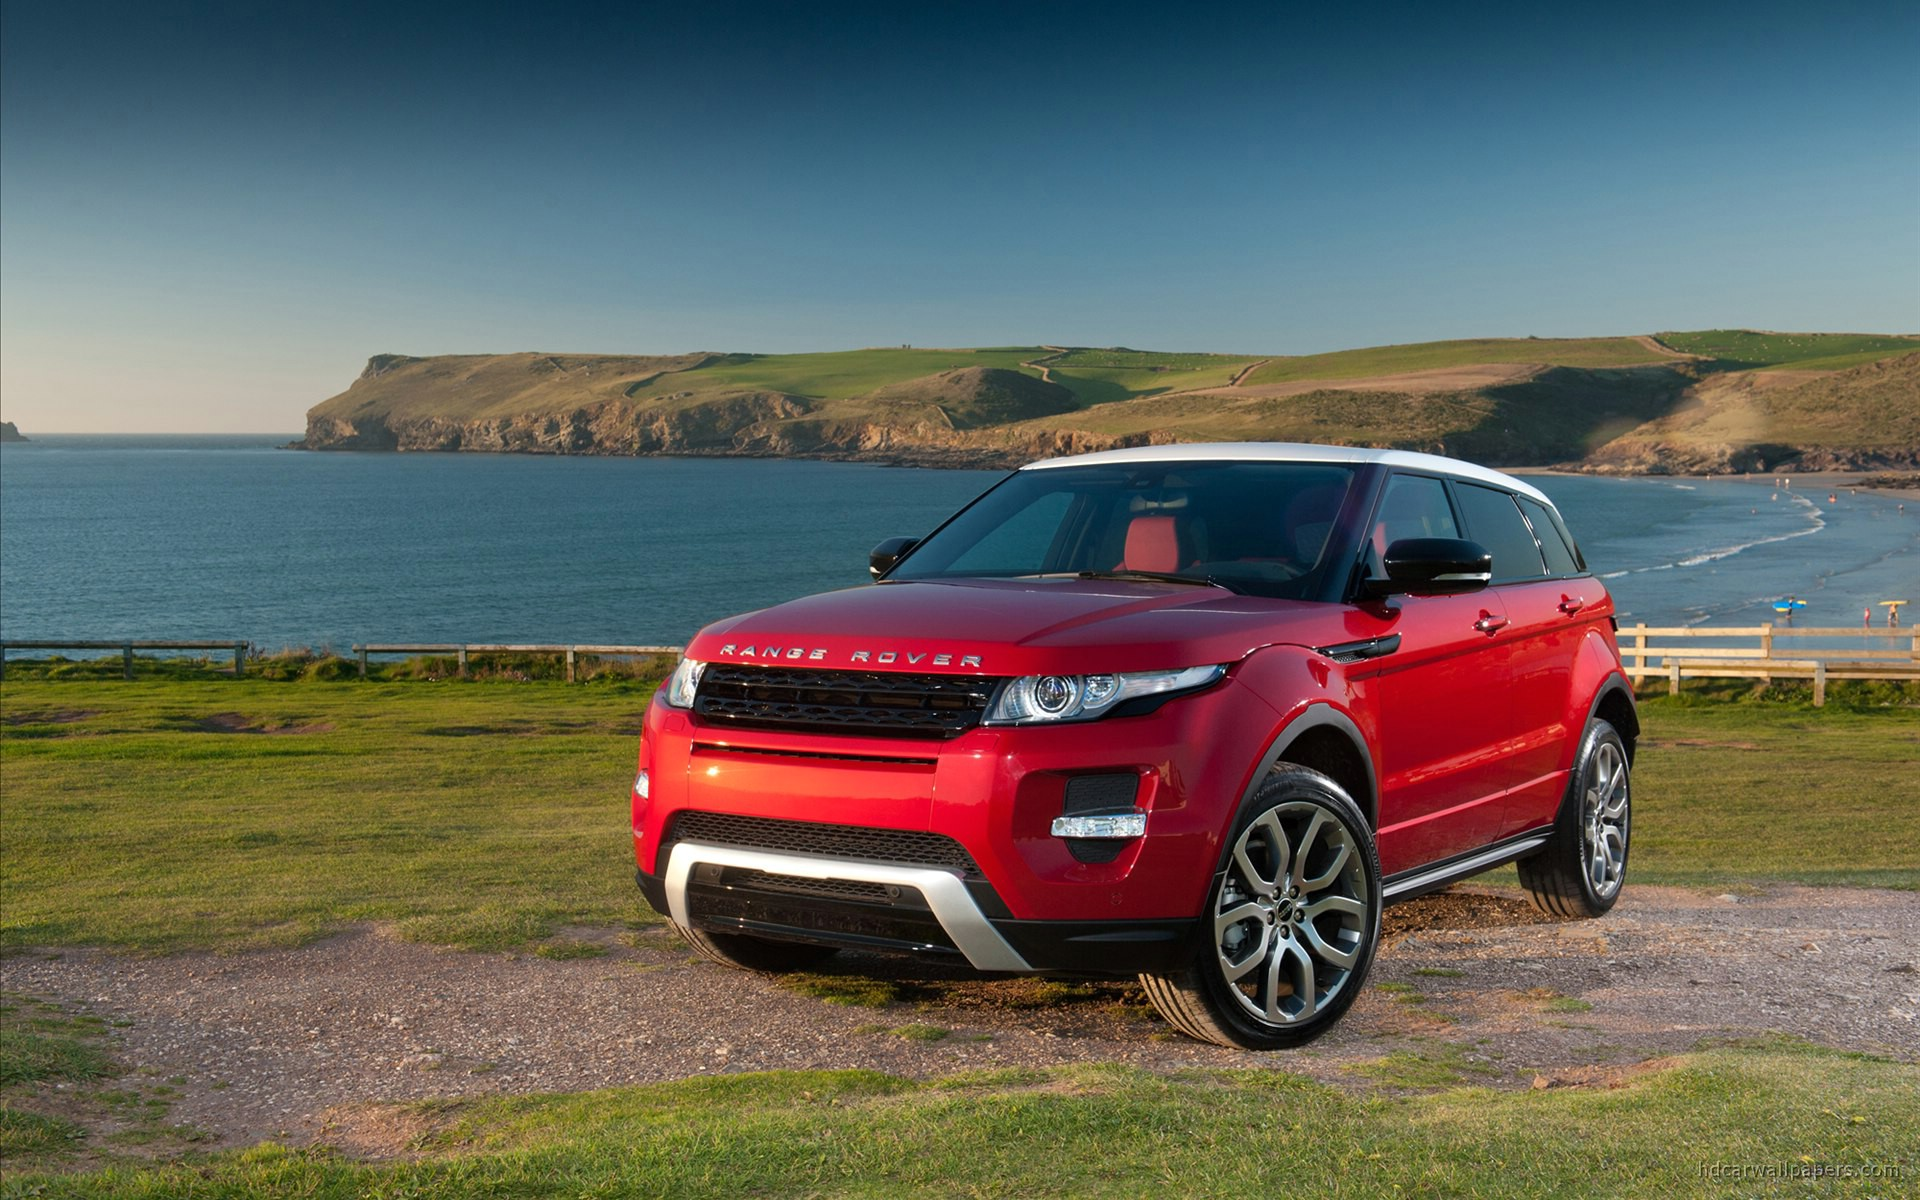 2012 range rover evoque 2 wallpaper hd car wallpapers id 1837. Black Bedroom Furniture Sets. Home Design Ideas